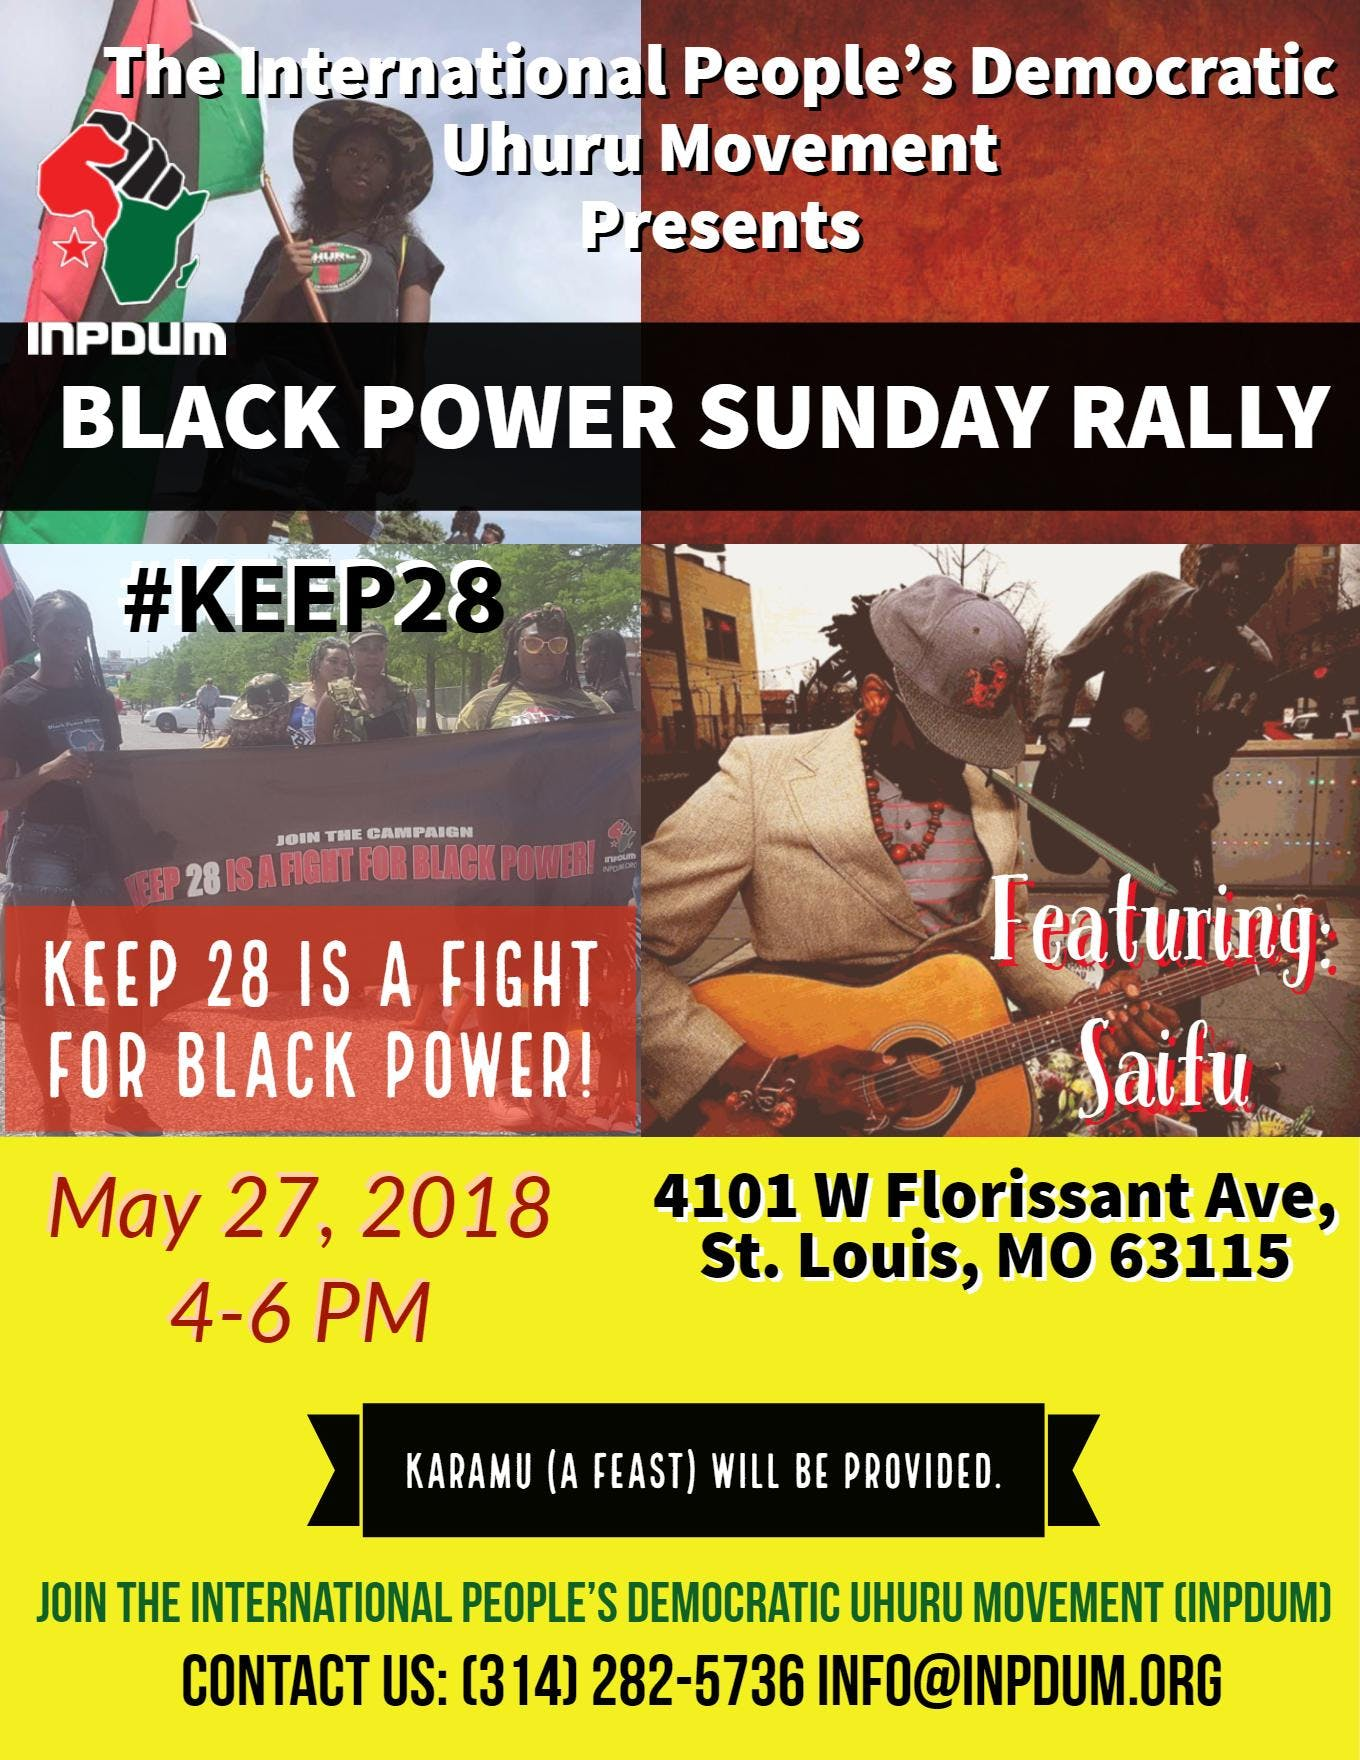 Black Power Sunday Rally: KEEP 28 IS A FIGHT